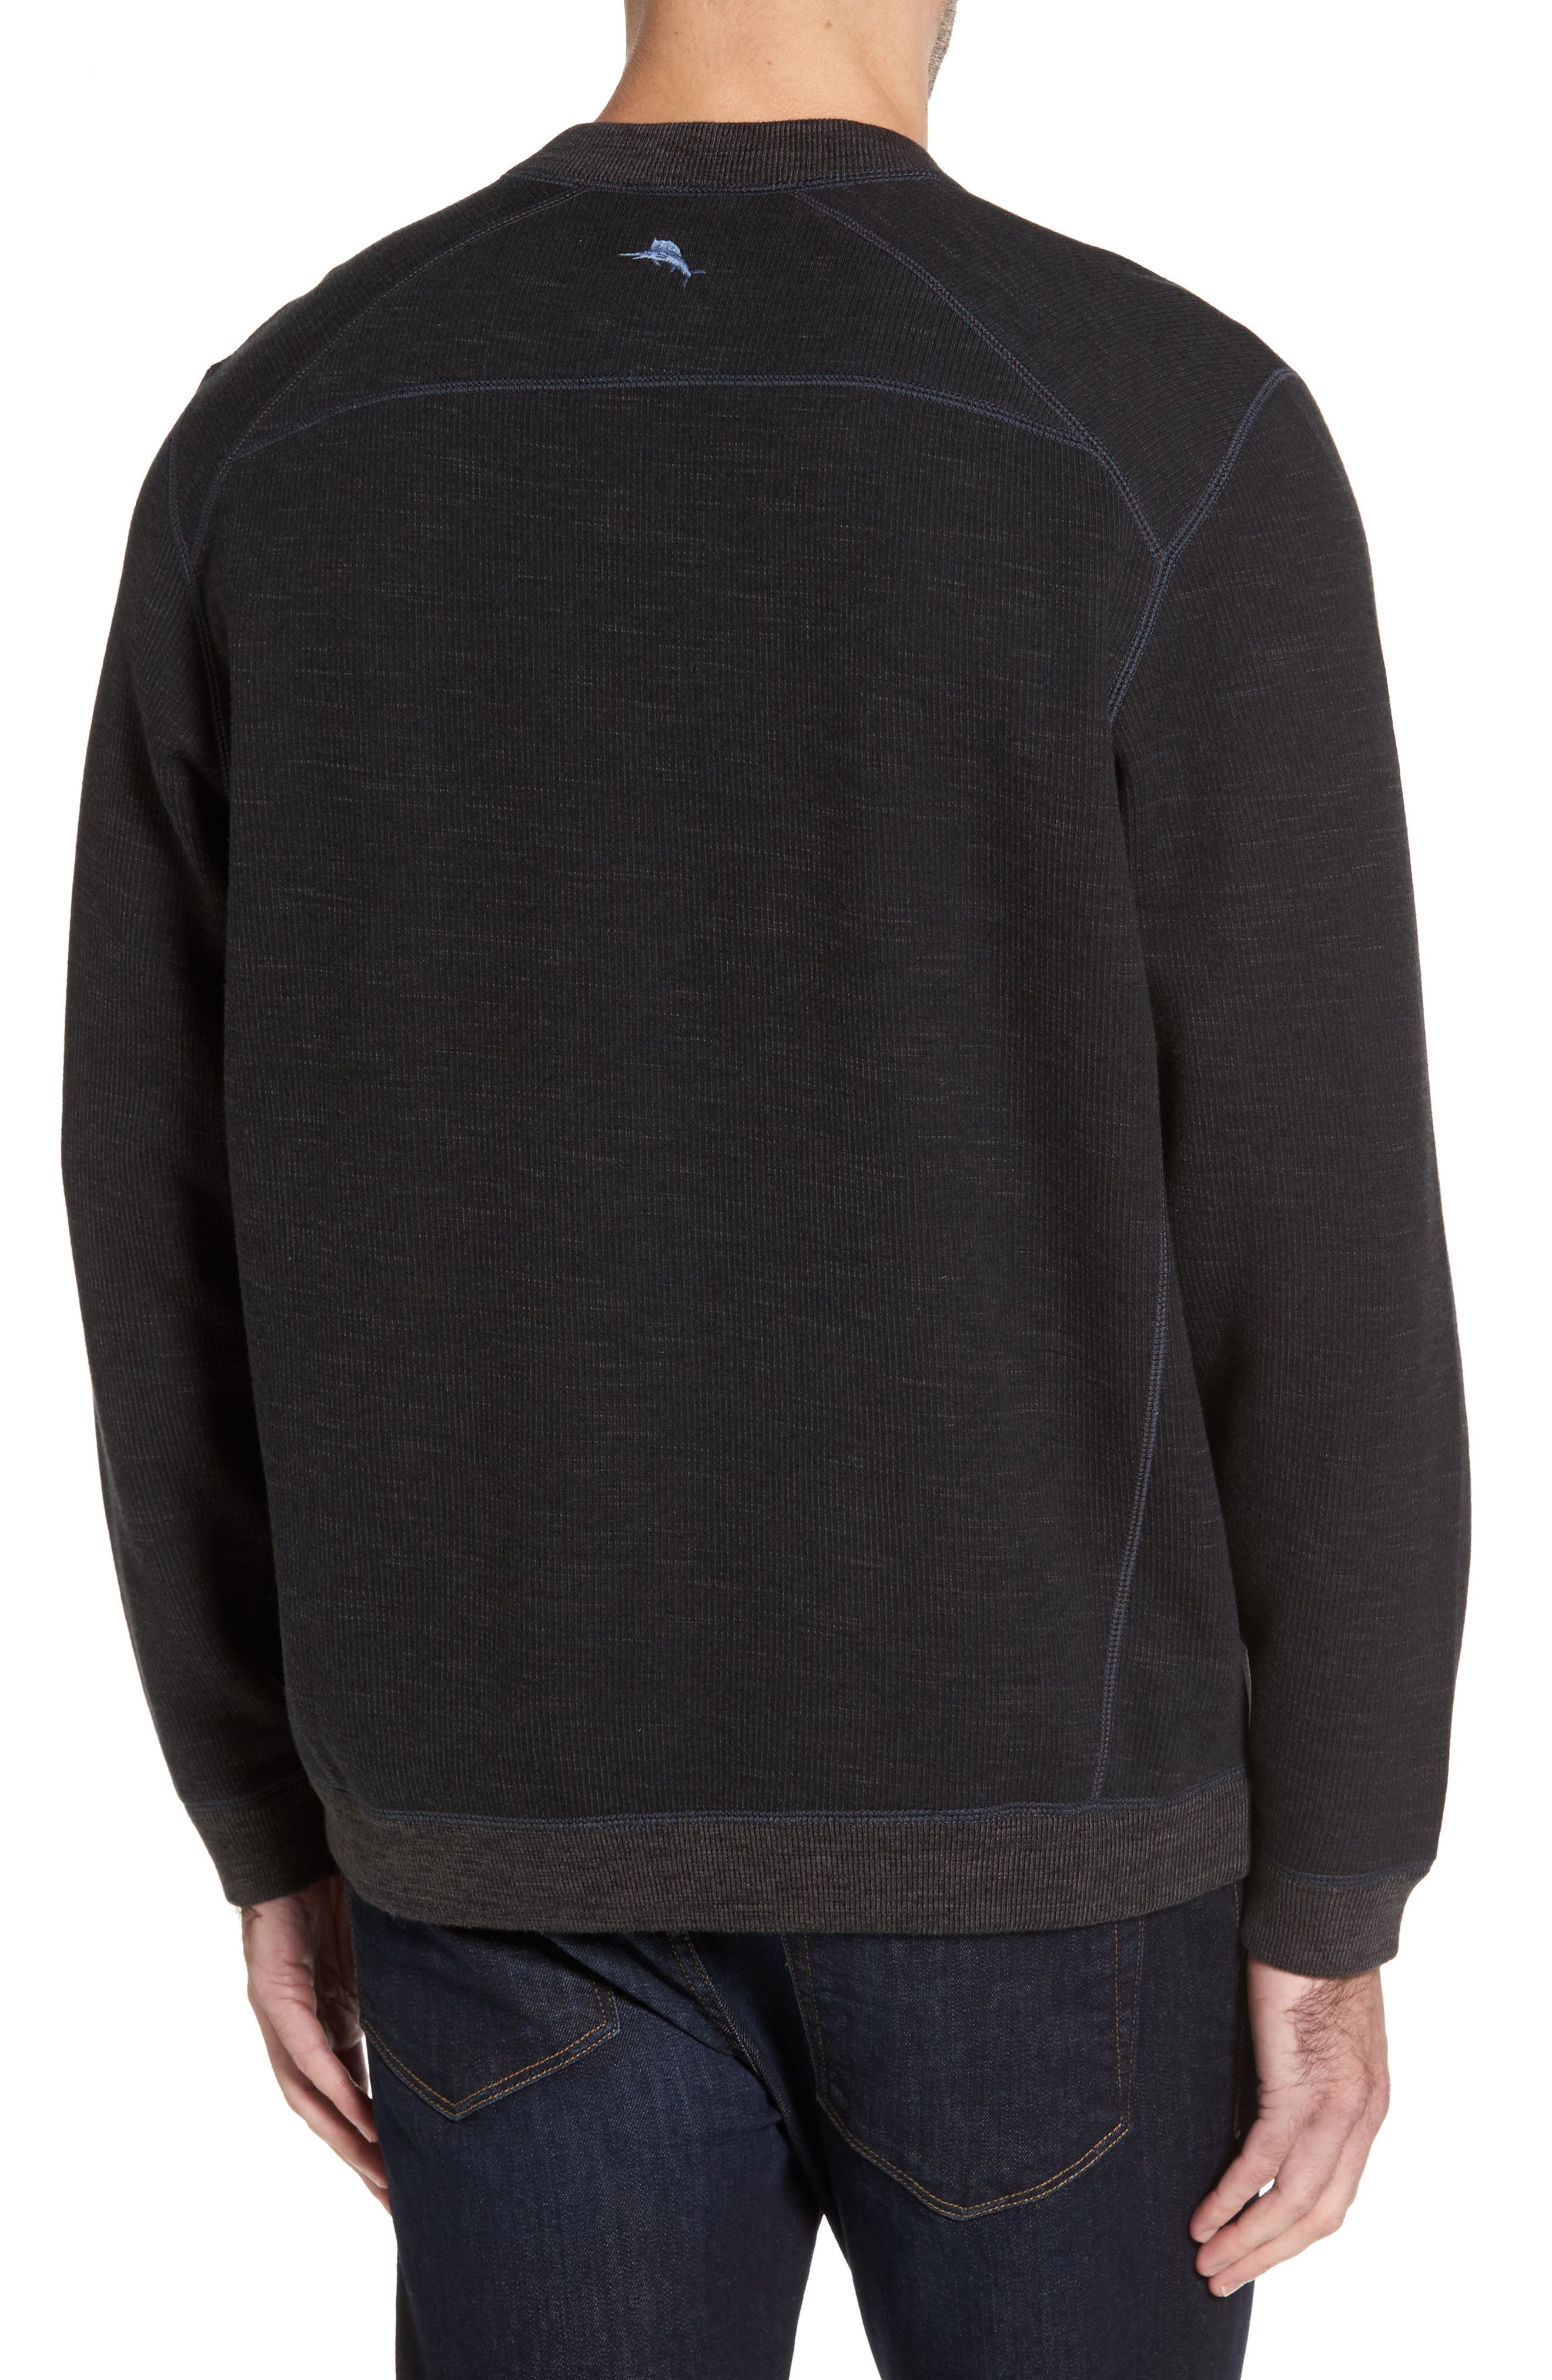 Flipsider Abaco Pullover,                             Alternate thumbnail 3, color,                             Black